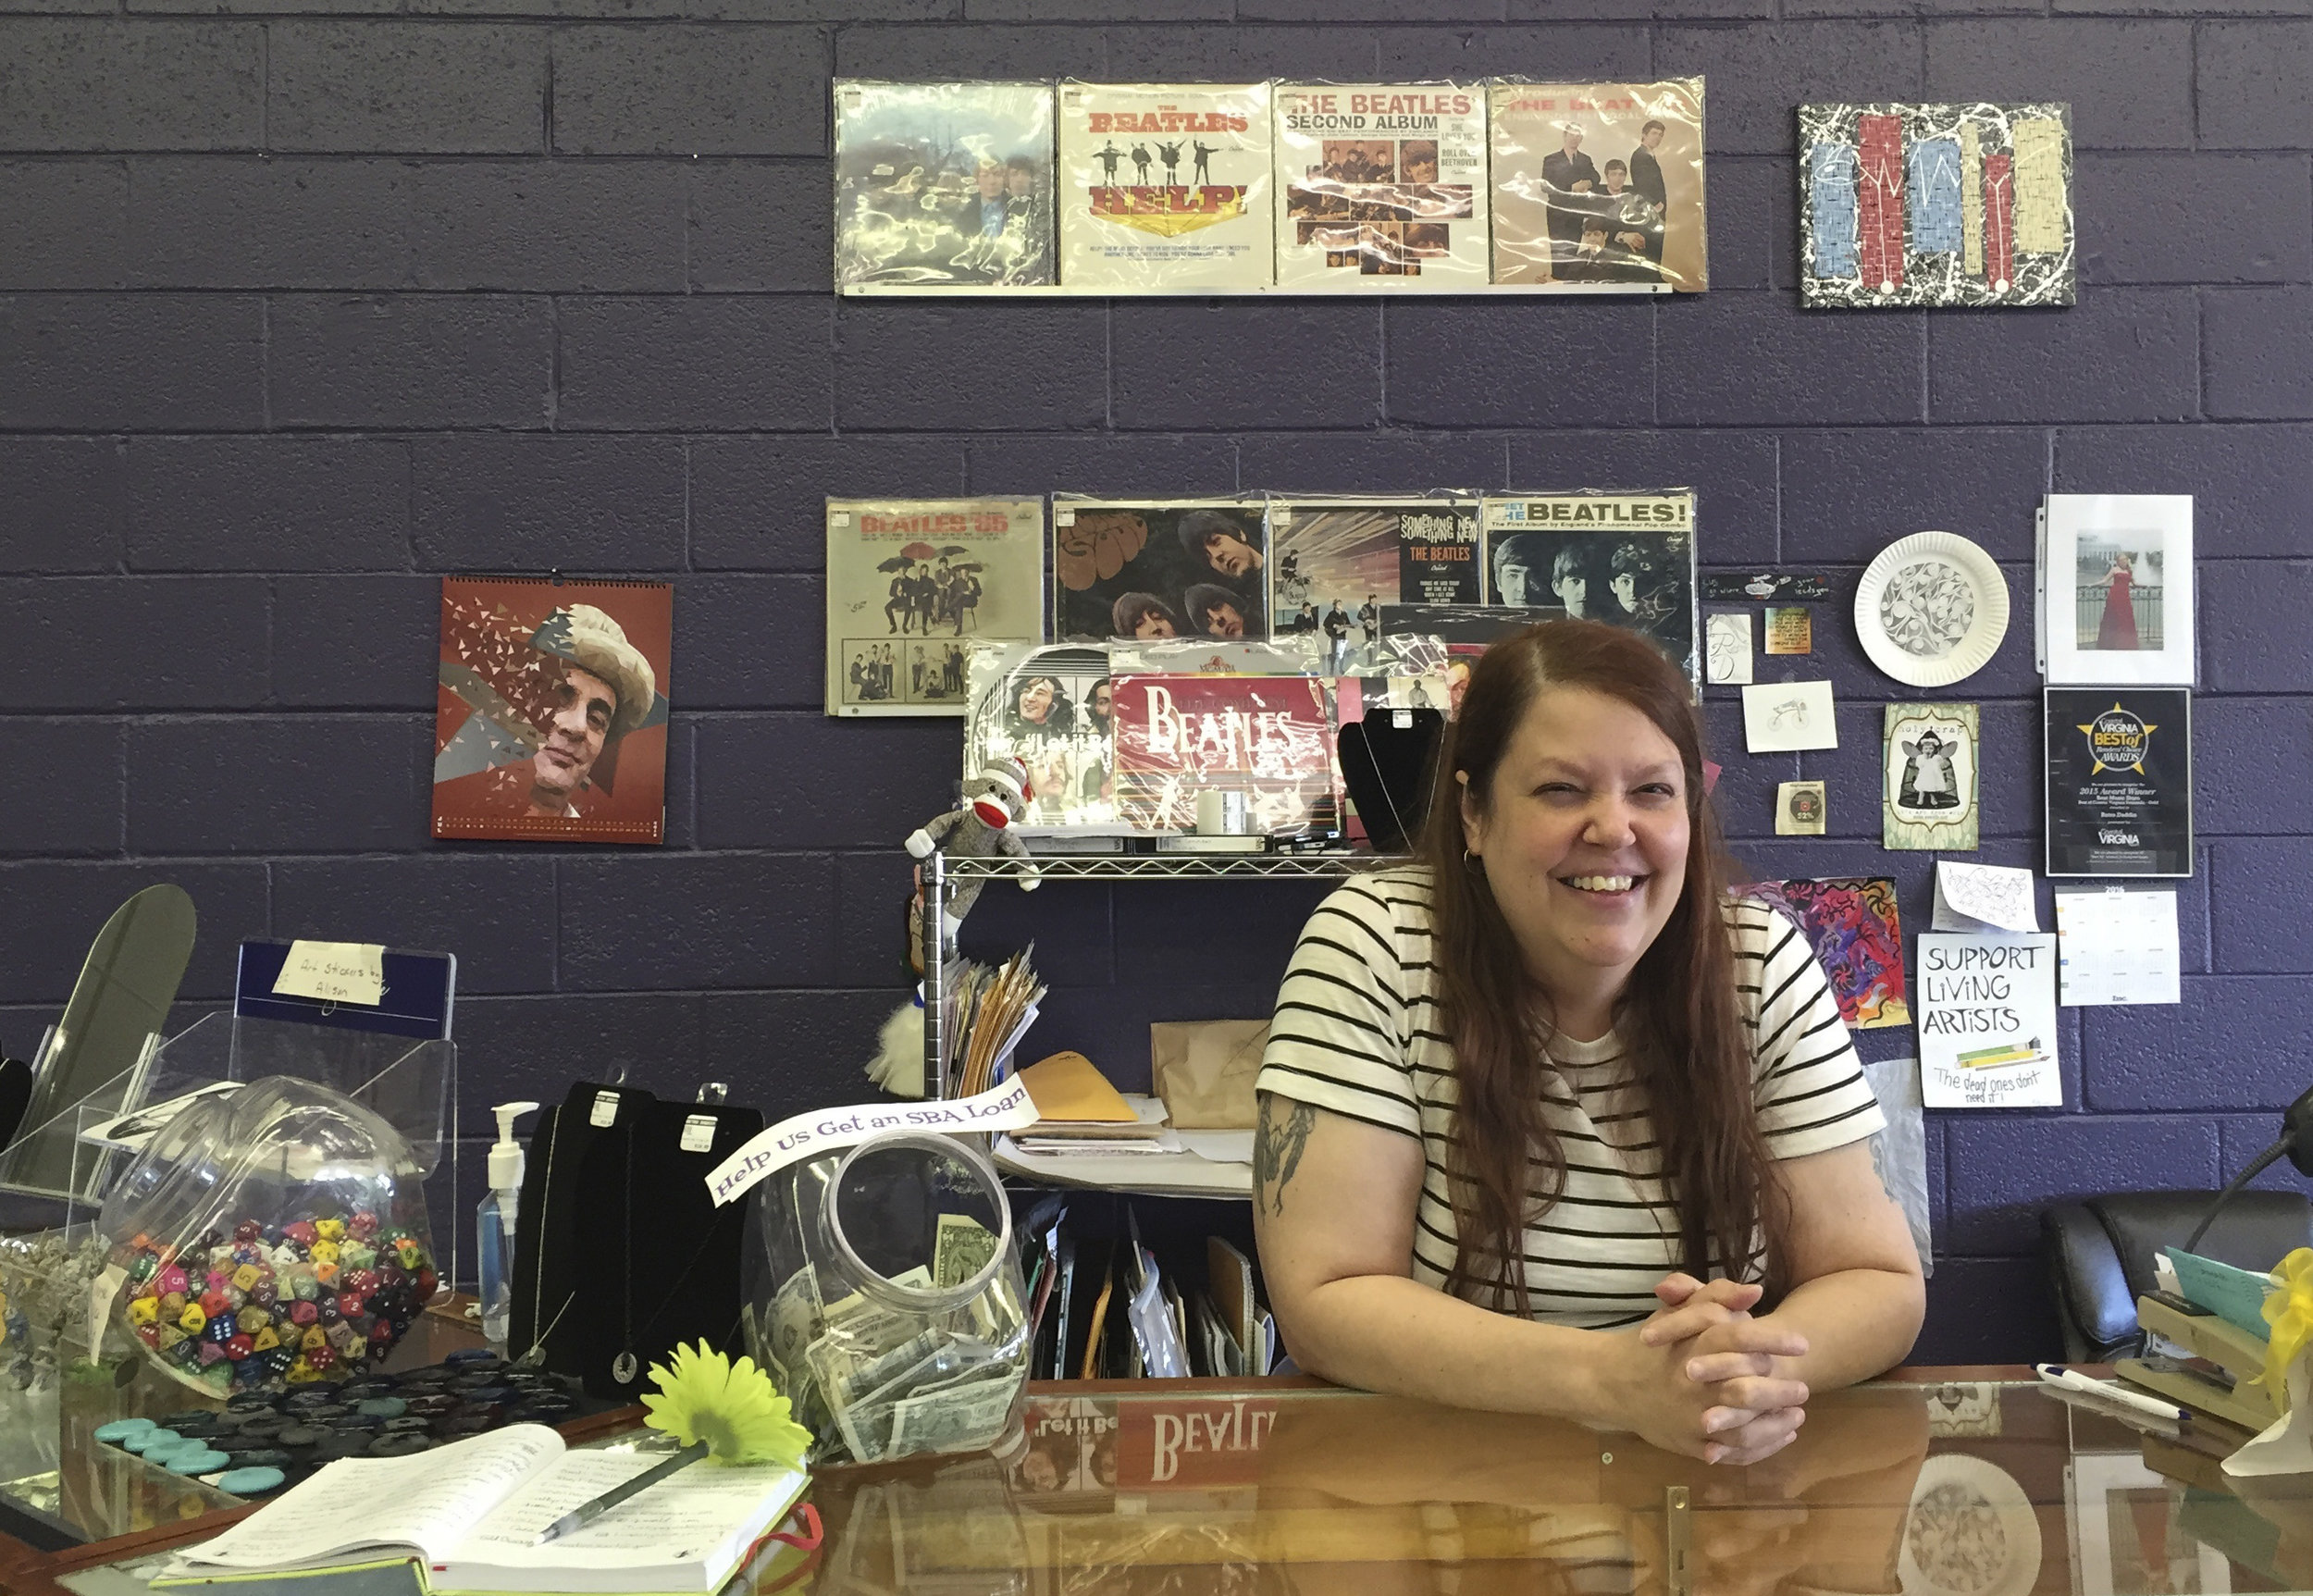 Jen Thurman, owner of the record store Retro Daddio poses for a photo at her store in Williamsburg, Va. Thursday July 28, 2016. Thurman says John Hinckley comes in about once a month and always buys something, whether it's a book about The Who or a 45 rpm record. Life for the man who tried to assassinate President Ronald Reagan 35 years ago has progressively become more normal as he prepares to permanently live with his mother. (AP Photo/Ben Finley)